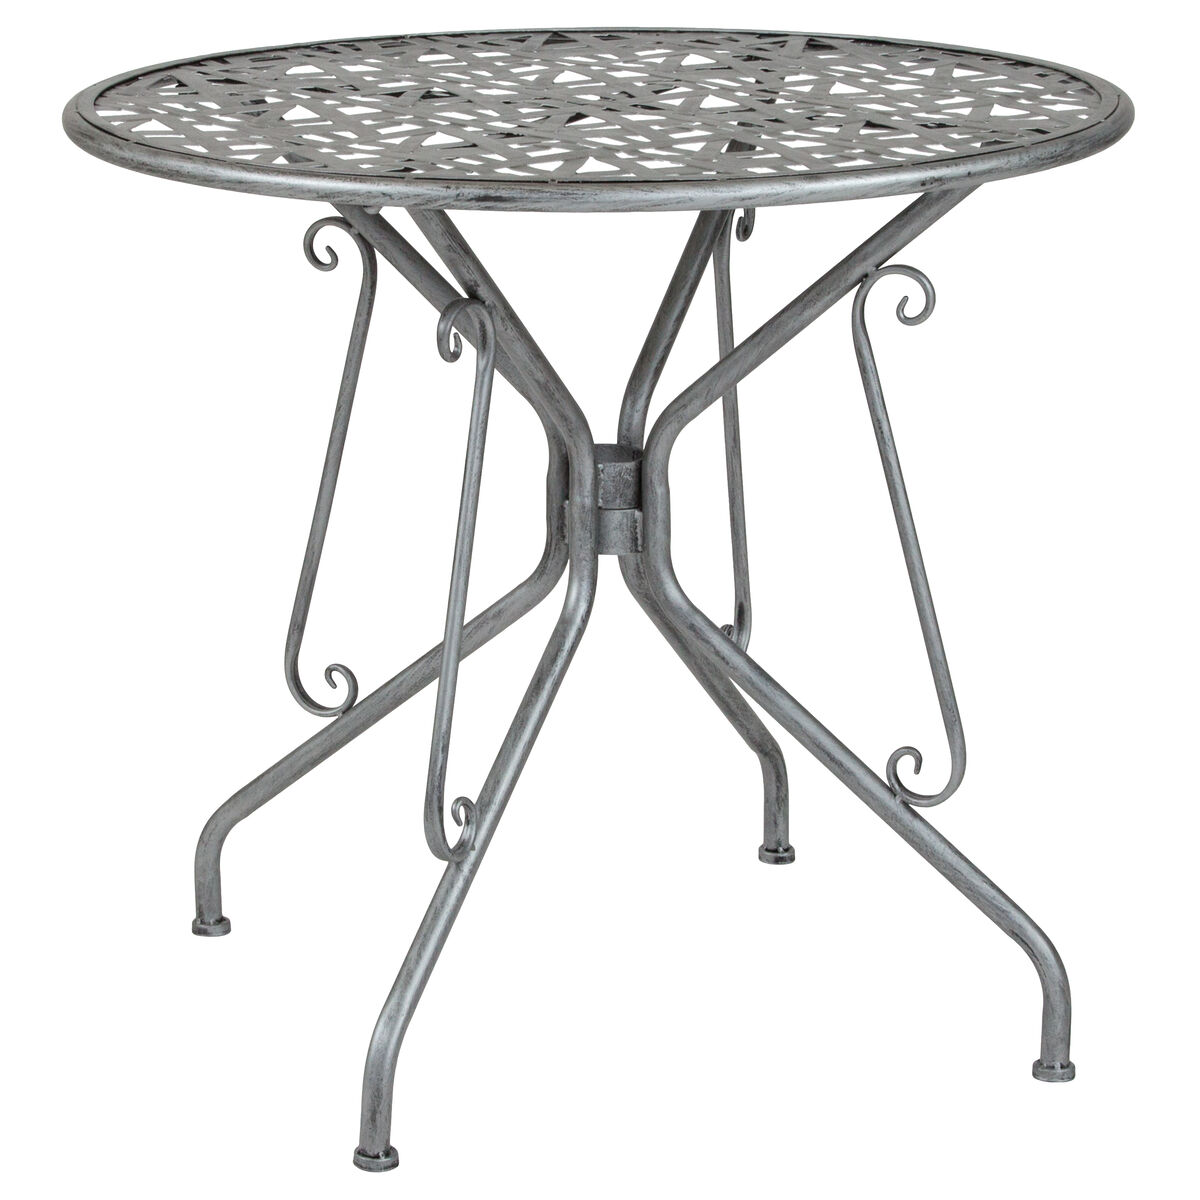 Our agostina series 31 5 round antique silver indoor outdoor steel patio table is on